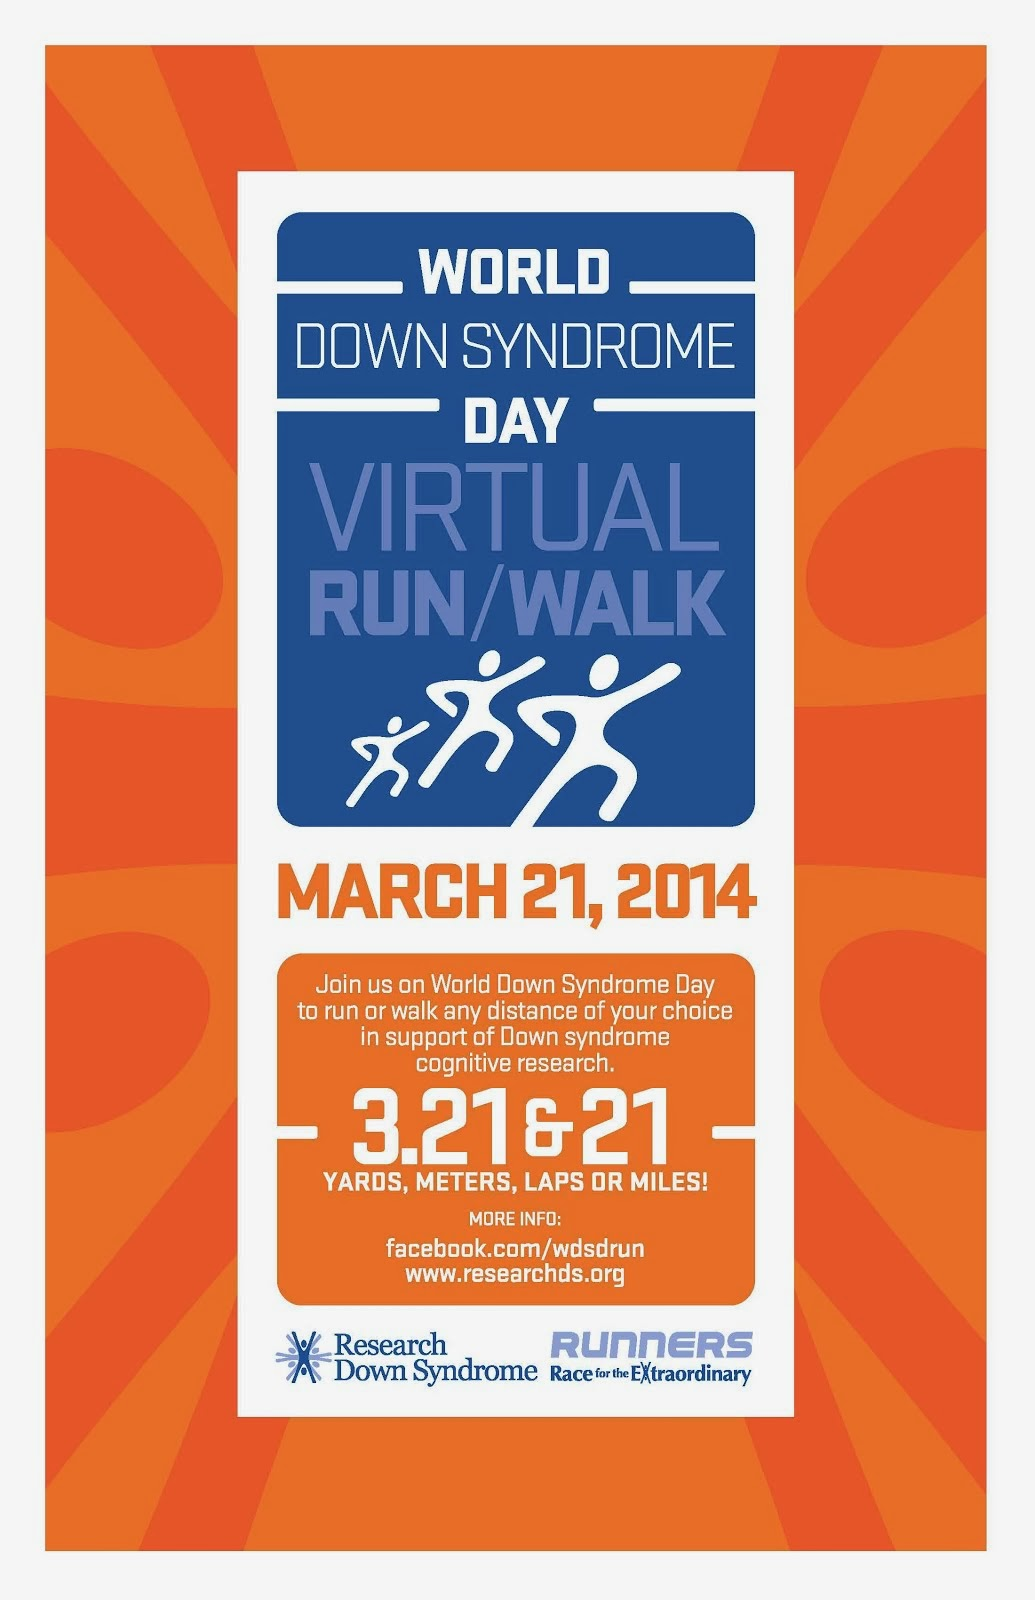 World Down Syndrome Day Virtual Run/Walk